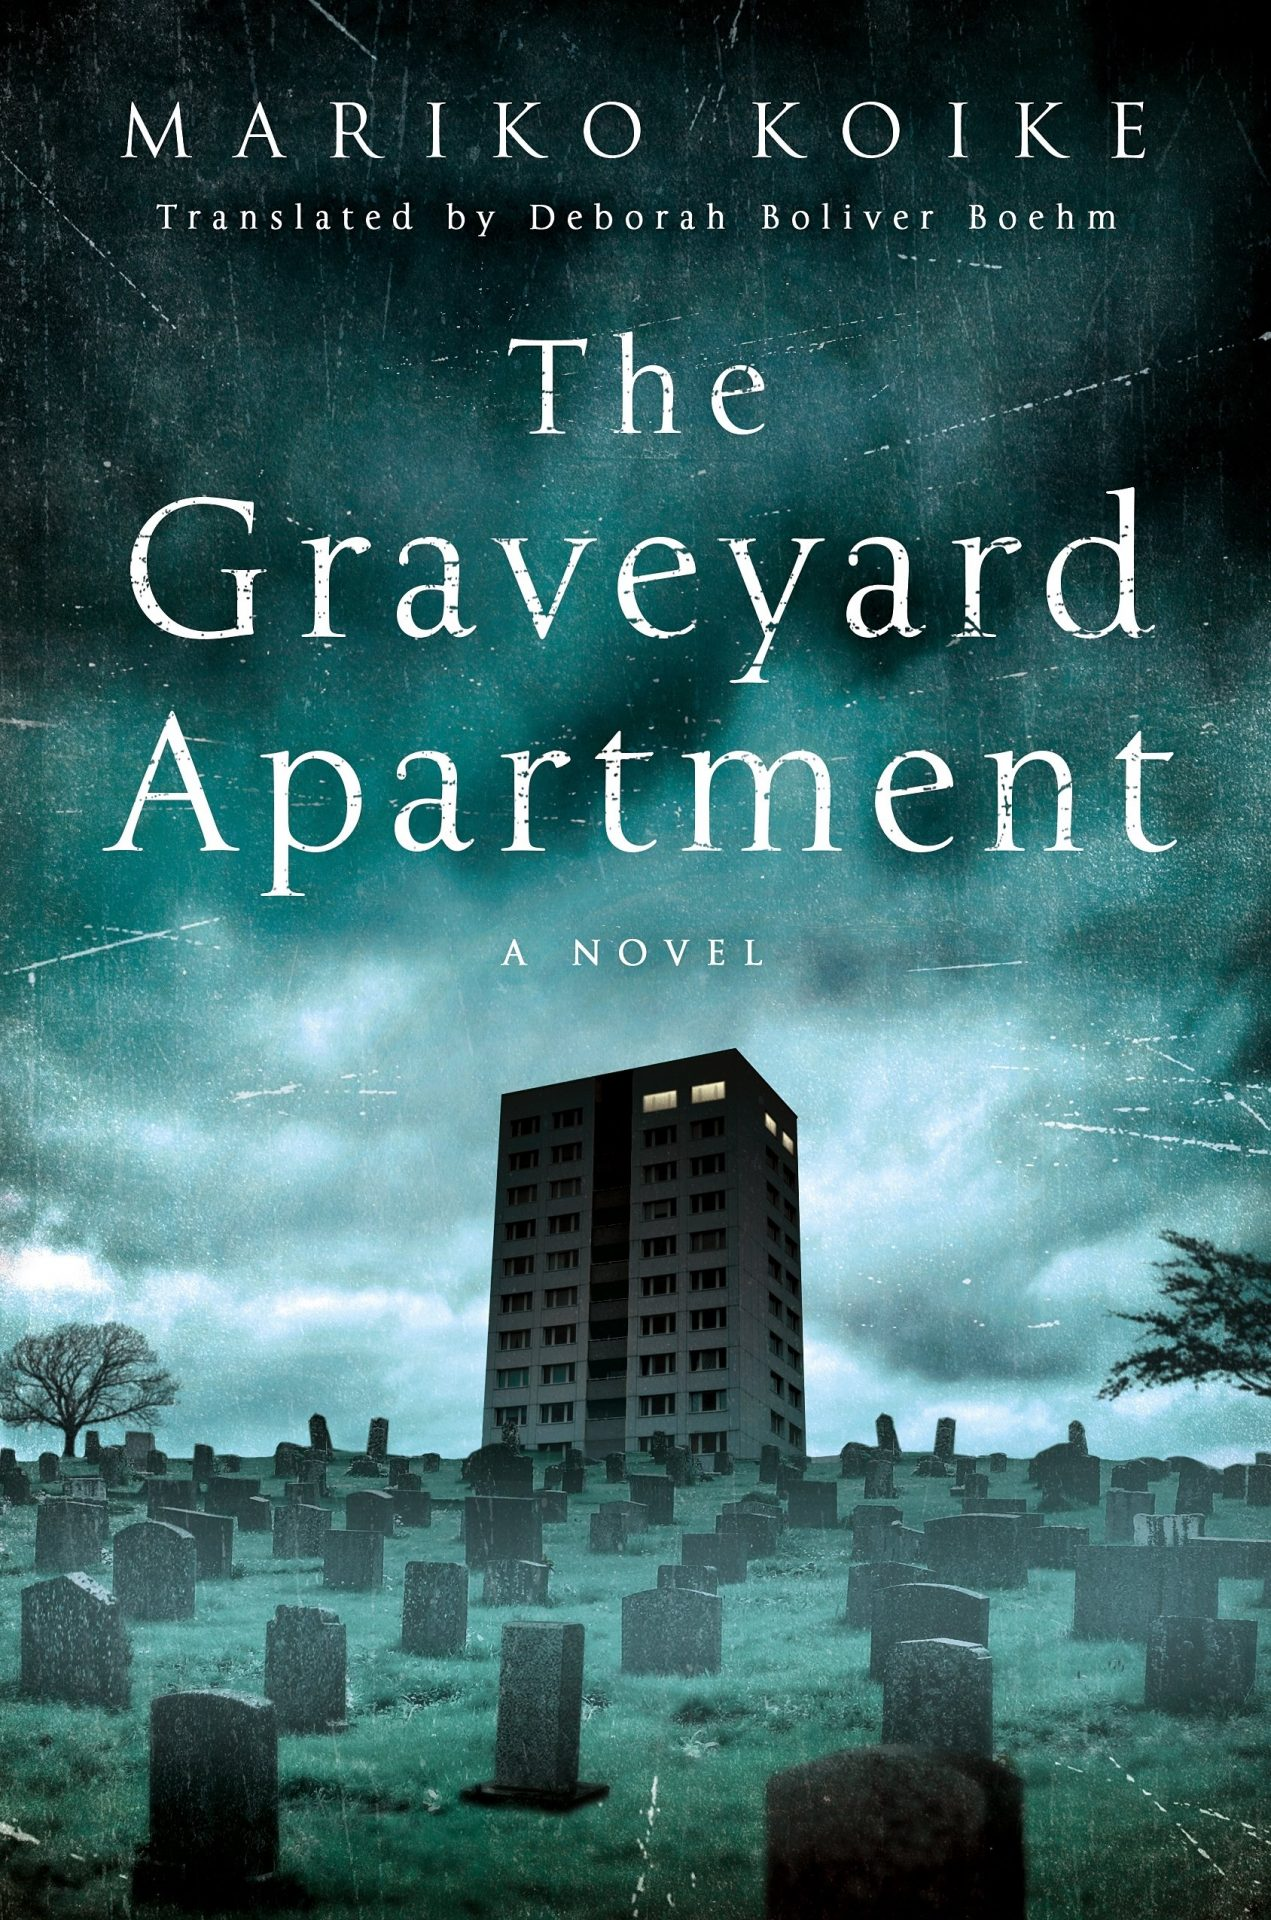 A high rise overlooking a cemetery on The Graveyard Apartment cover